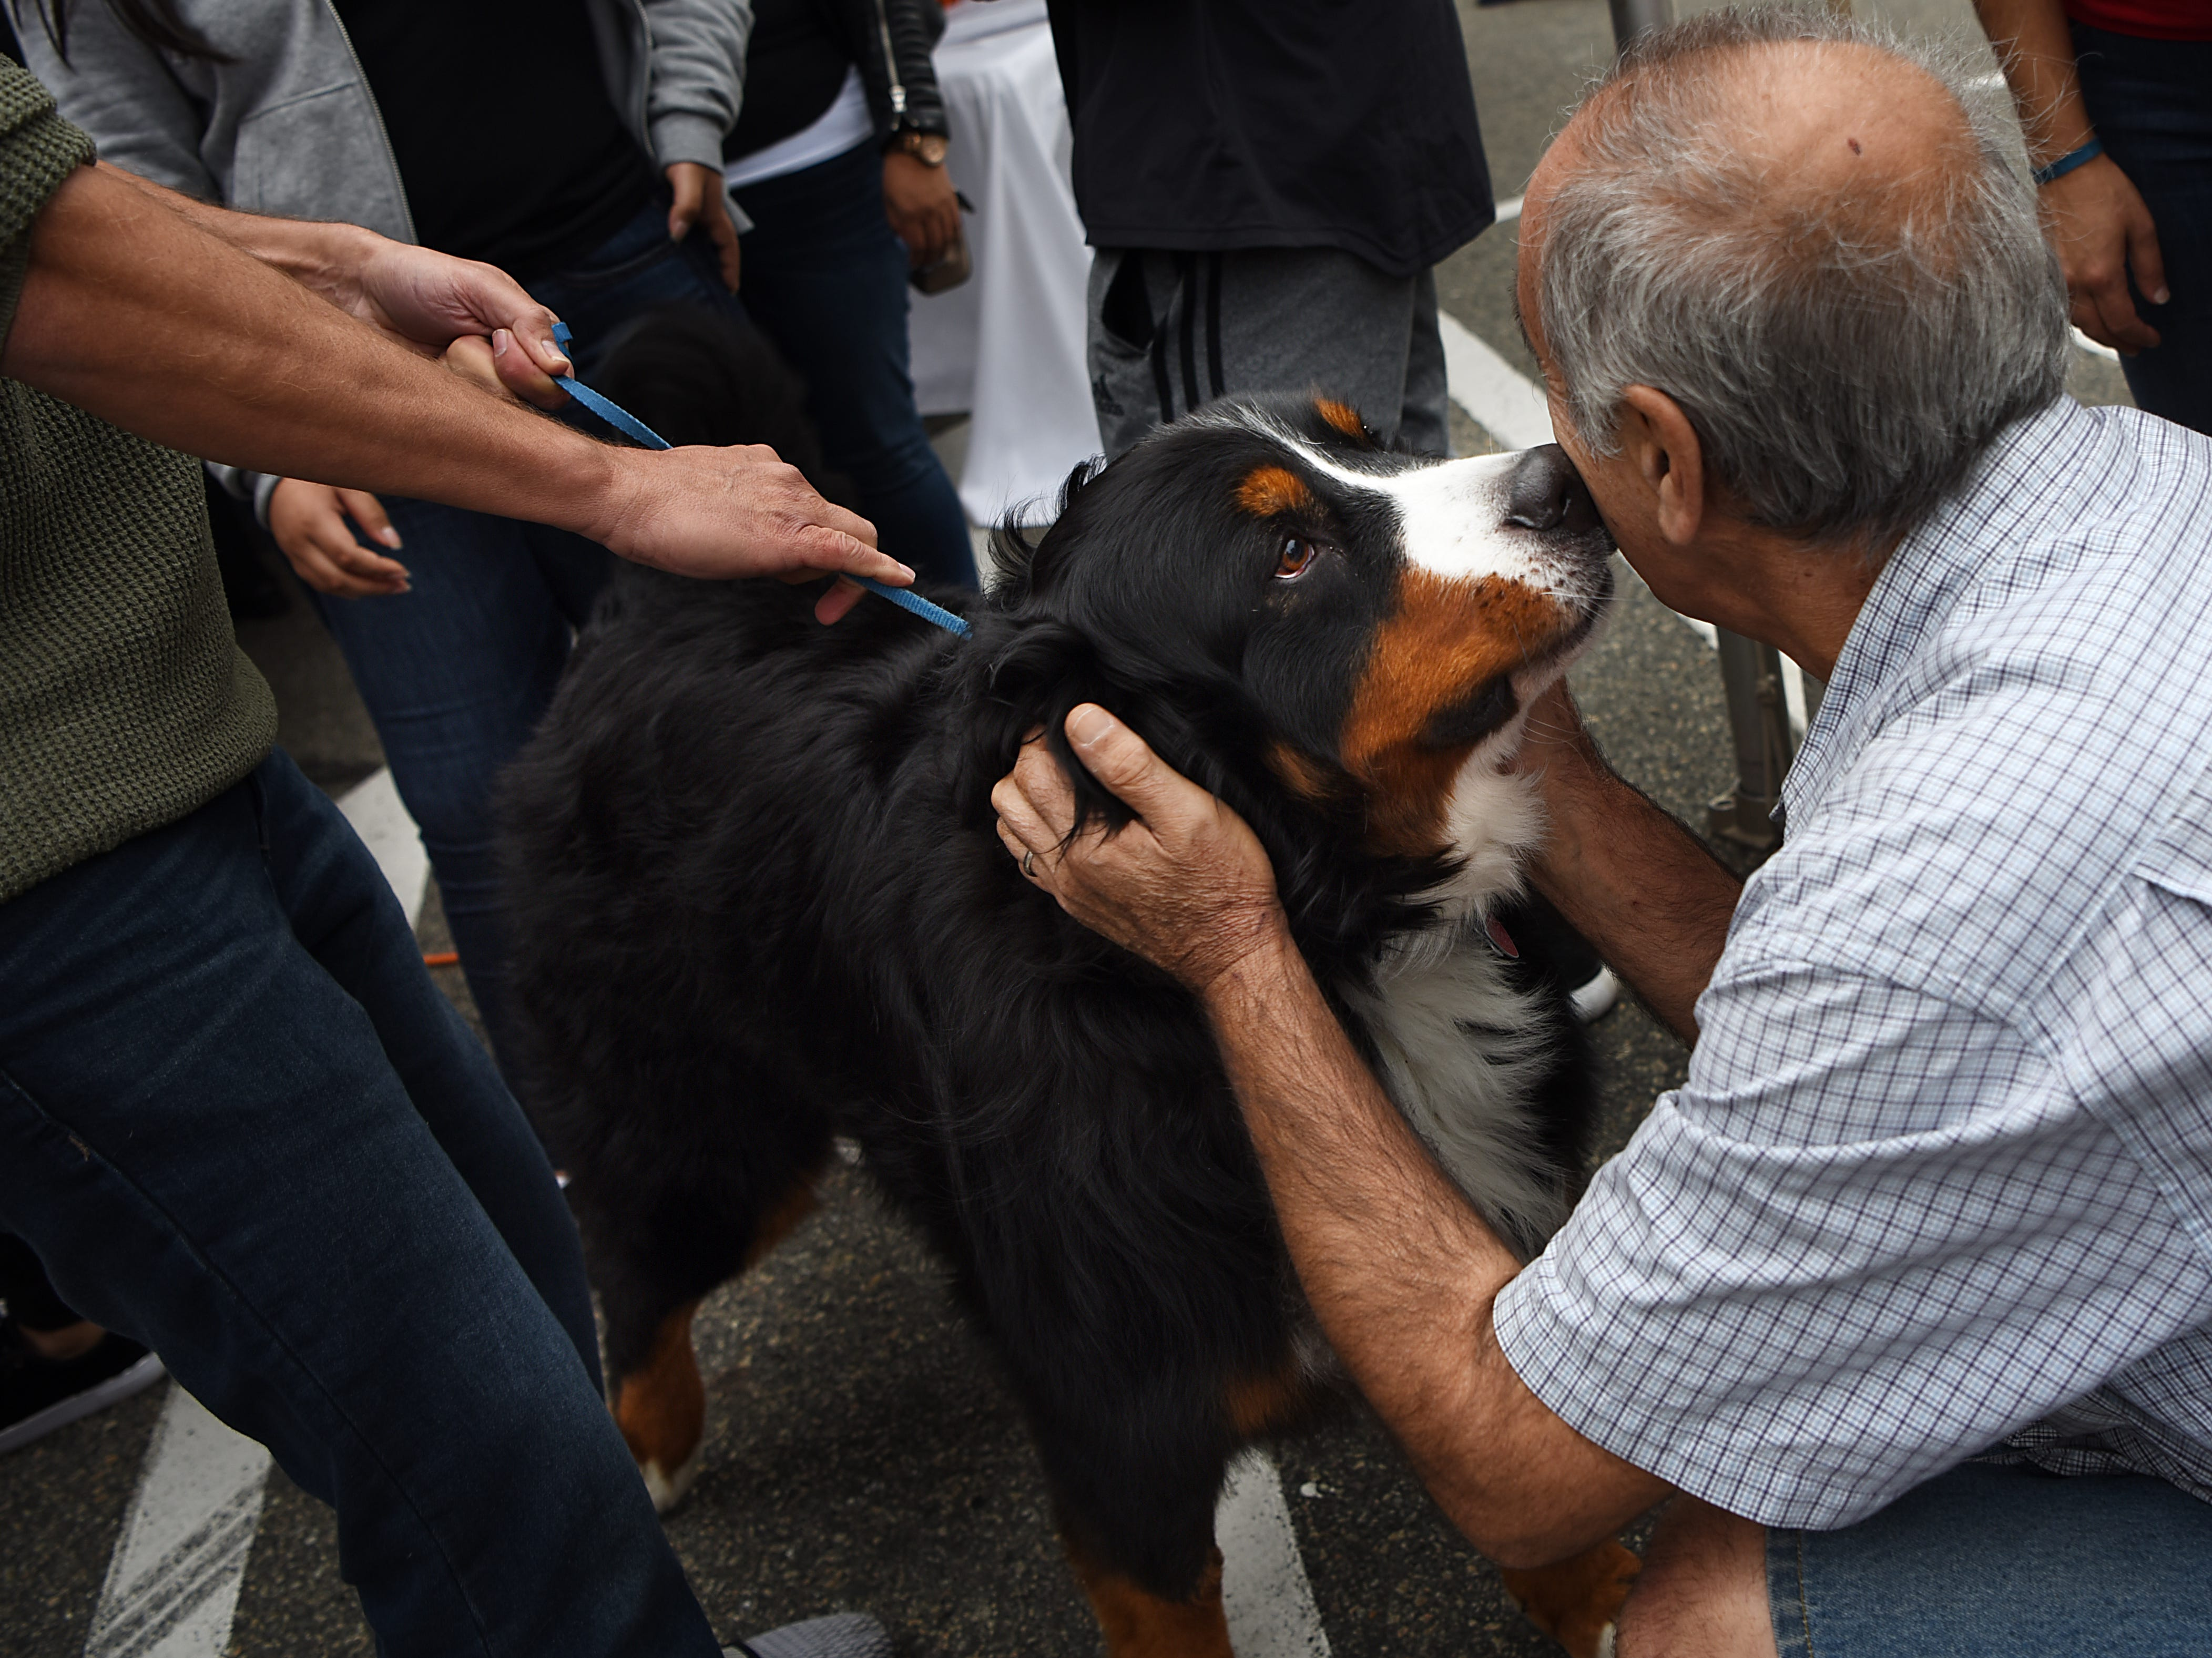 Luka, a three year old Bernese Mountain Dog from Tenafly, greets a stranger during Woofstock 2018, a benefit for Bergen County animal rescue organizations, at City Place in Edgewater on Saturday September 8, 2018.